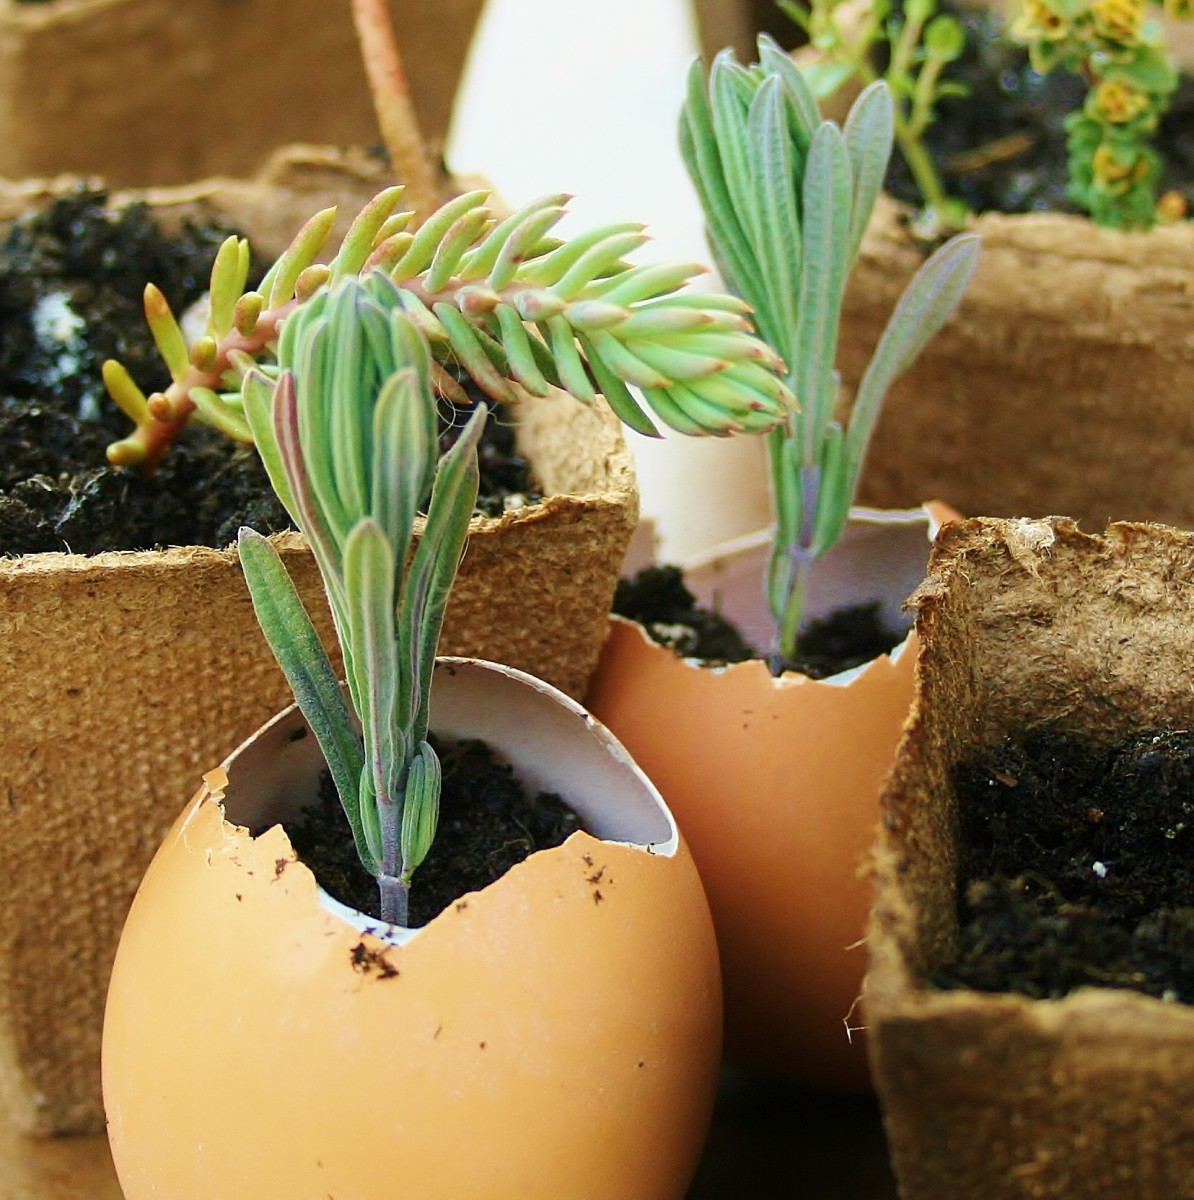 Last spring, we started lavender, rosemary & various succulents from cuttings in peat pots and eggshells.